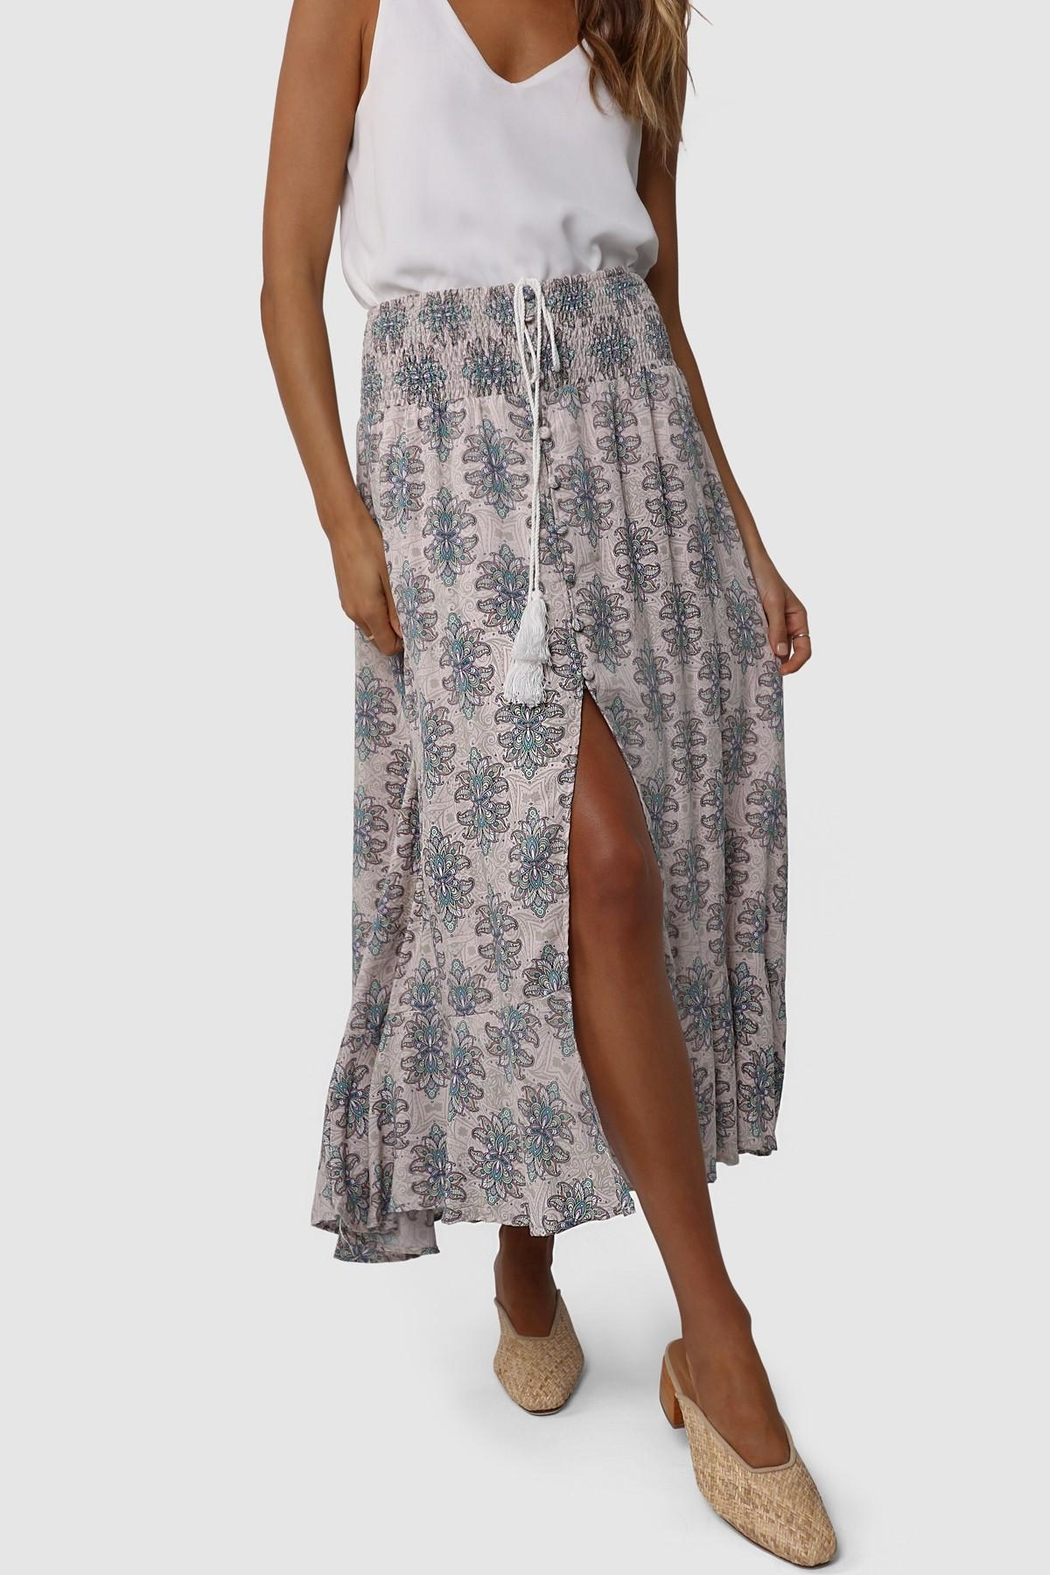 Lost in Lunar Evie Maxi Skirt - Main Image